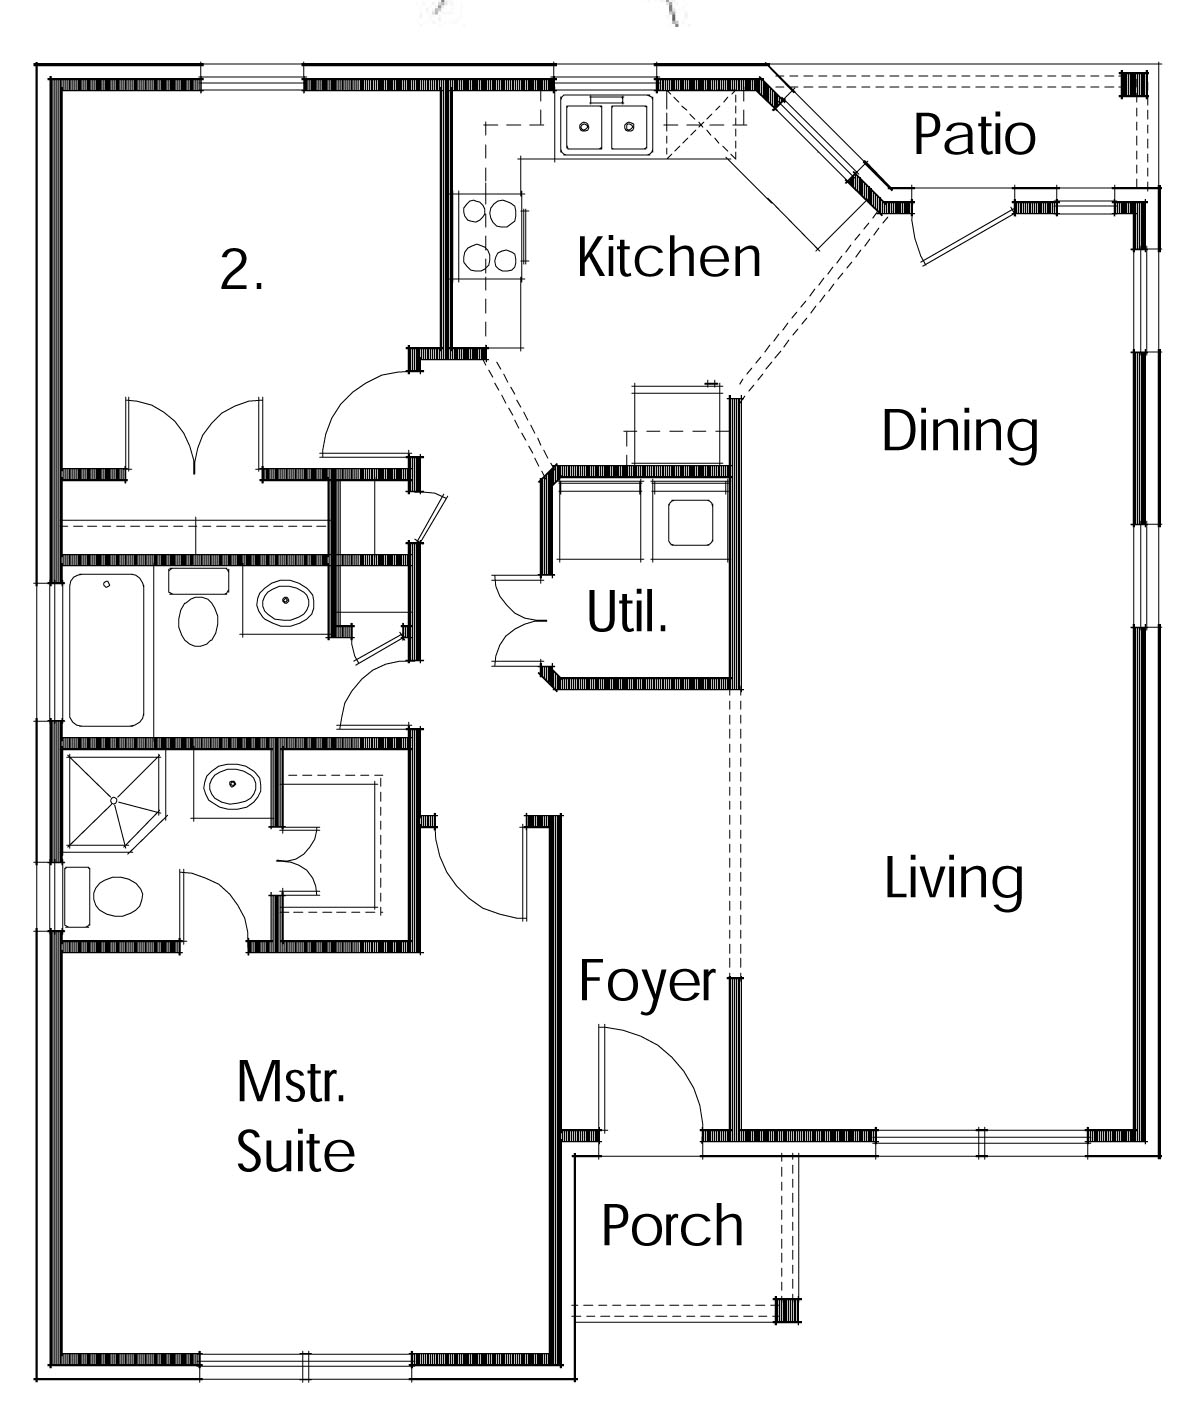 Small houses house plans and home design on pinterest for Simple home plans to build